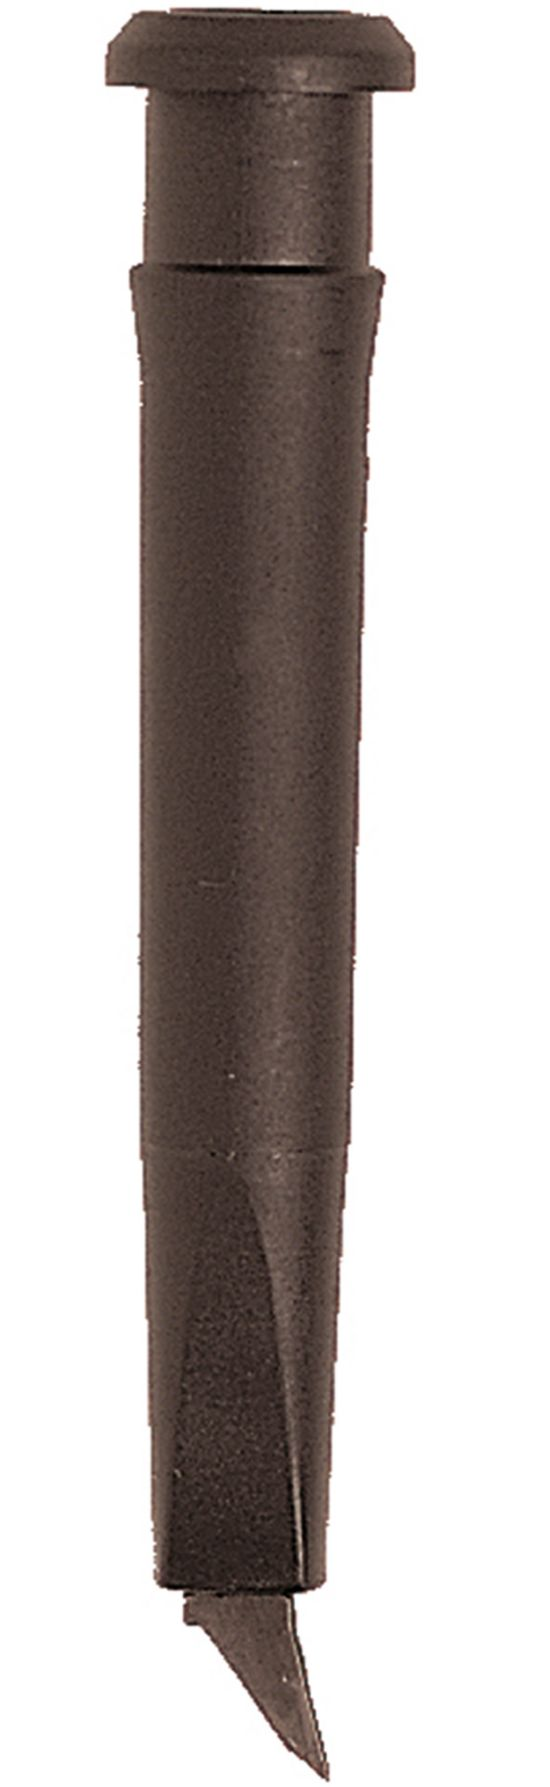 Ferrule Mountain Piggholk 10mm